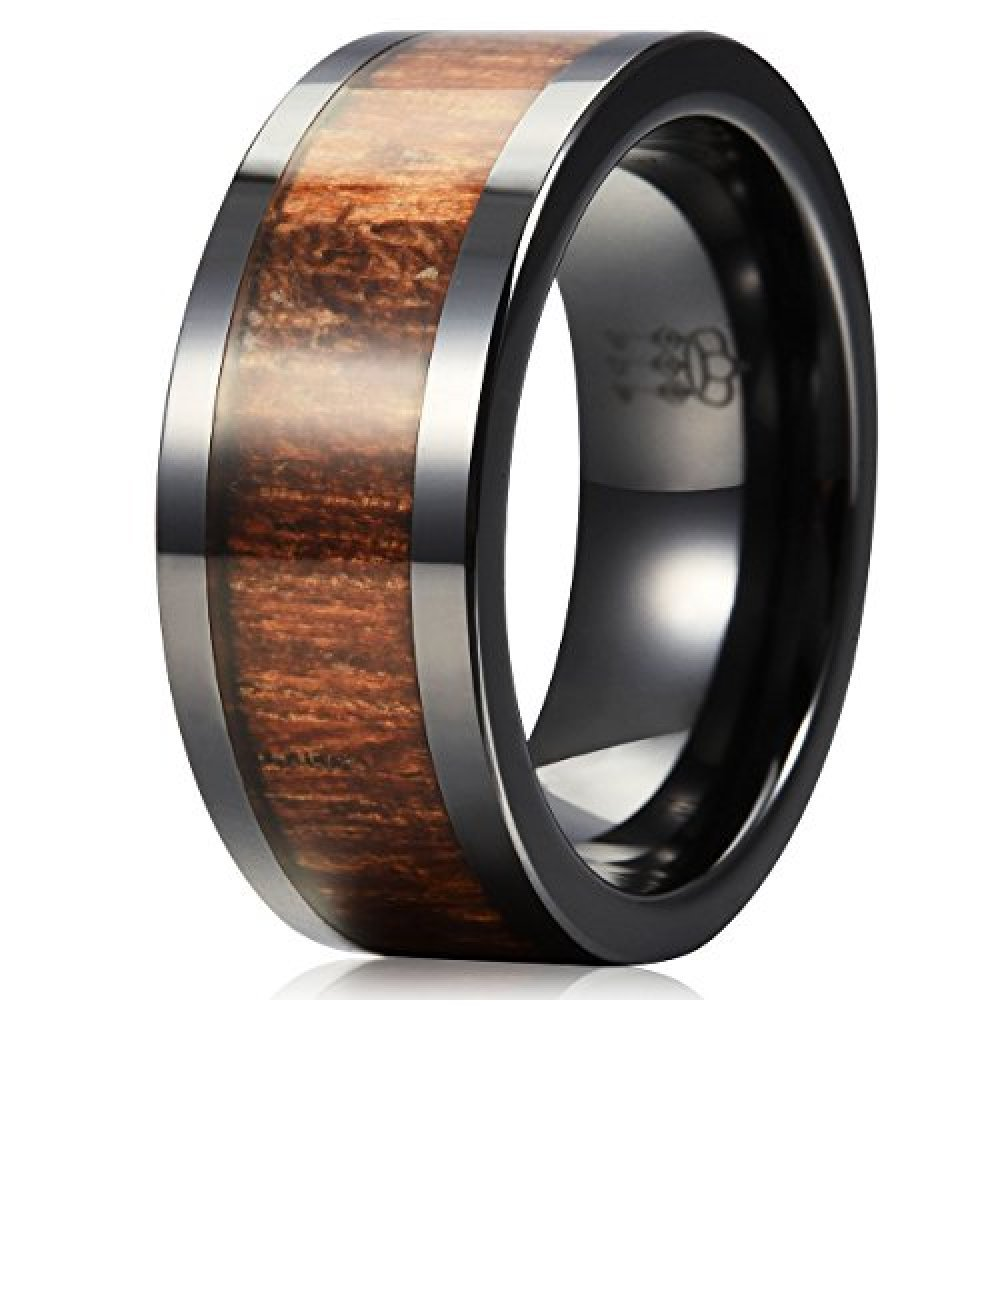 Three Keys Jewelry 8mm Black Ceramic Wedding Ring with Real Koa Wood Inlay Flat Top Wedding Band Engagement Ring Comfort Fit Size 10 by Three Keys Jewelry